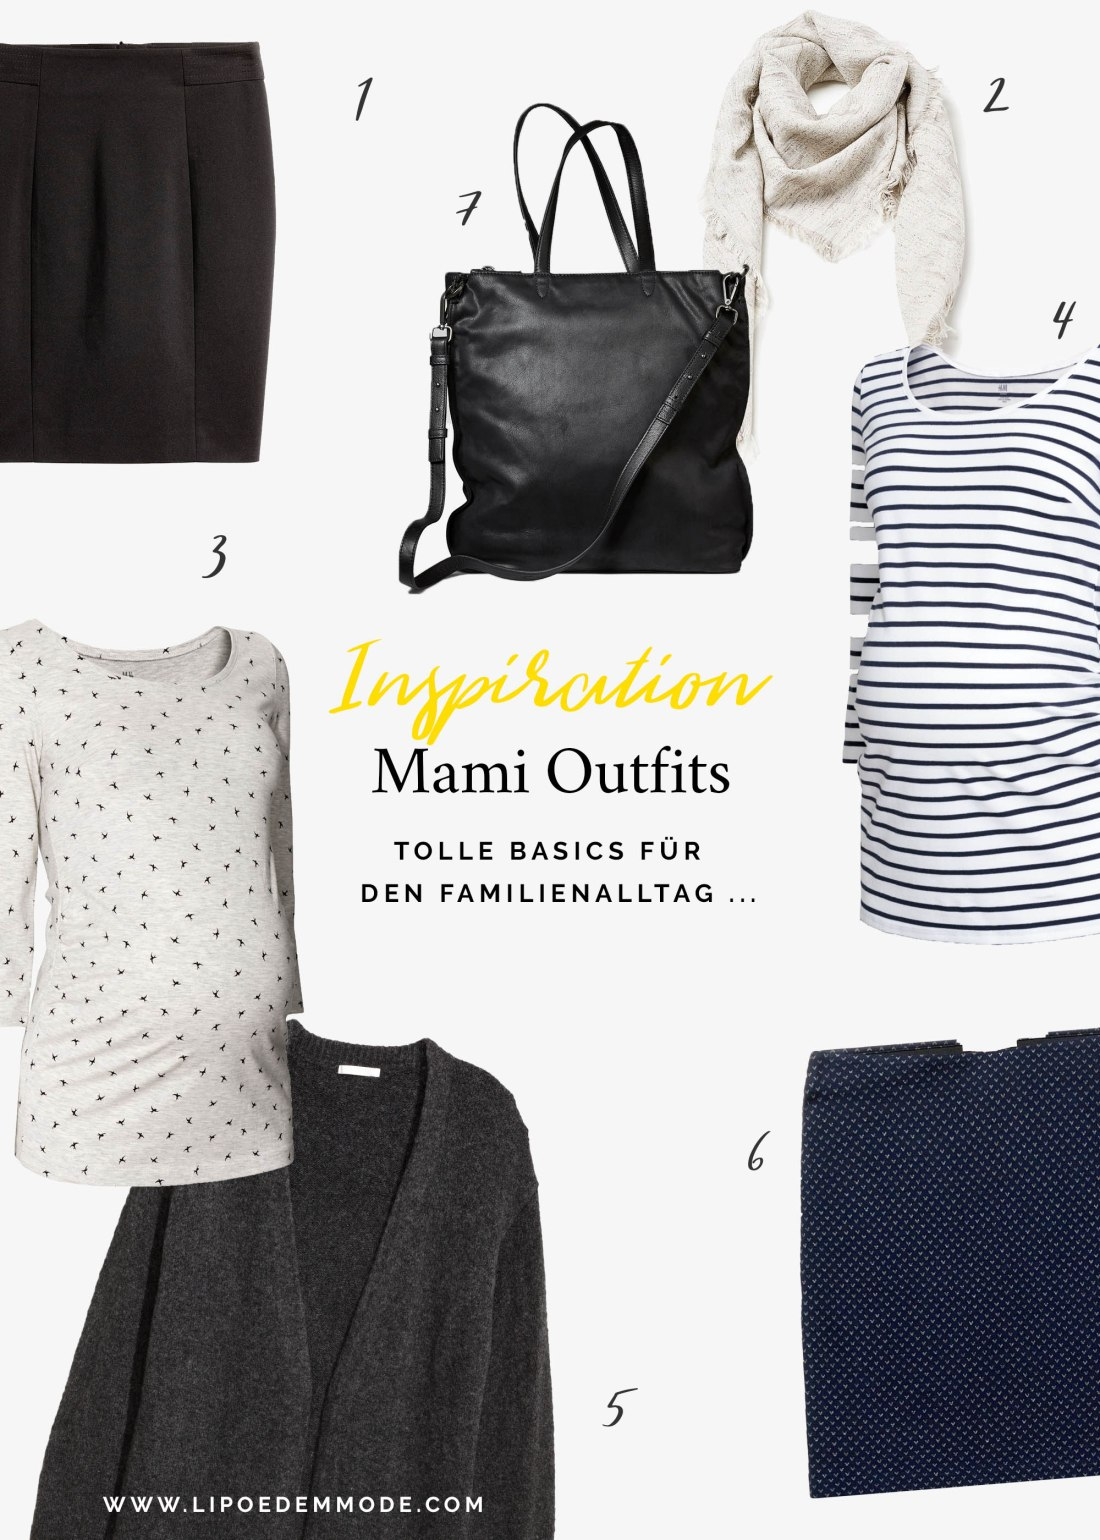 lipoedem mode mami outfits produkte selbstliebe mama mode